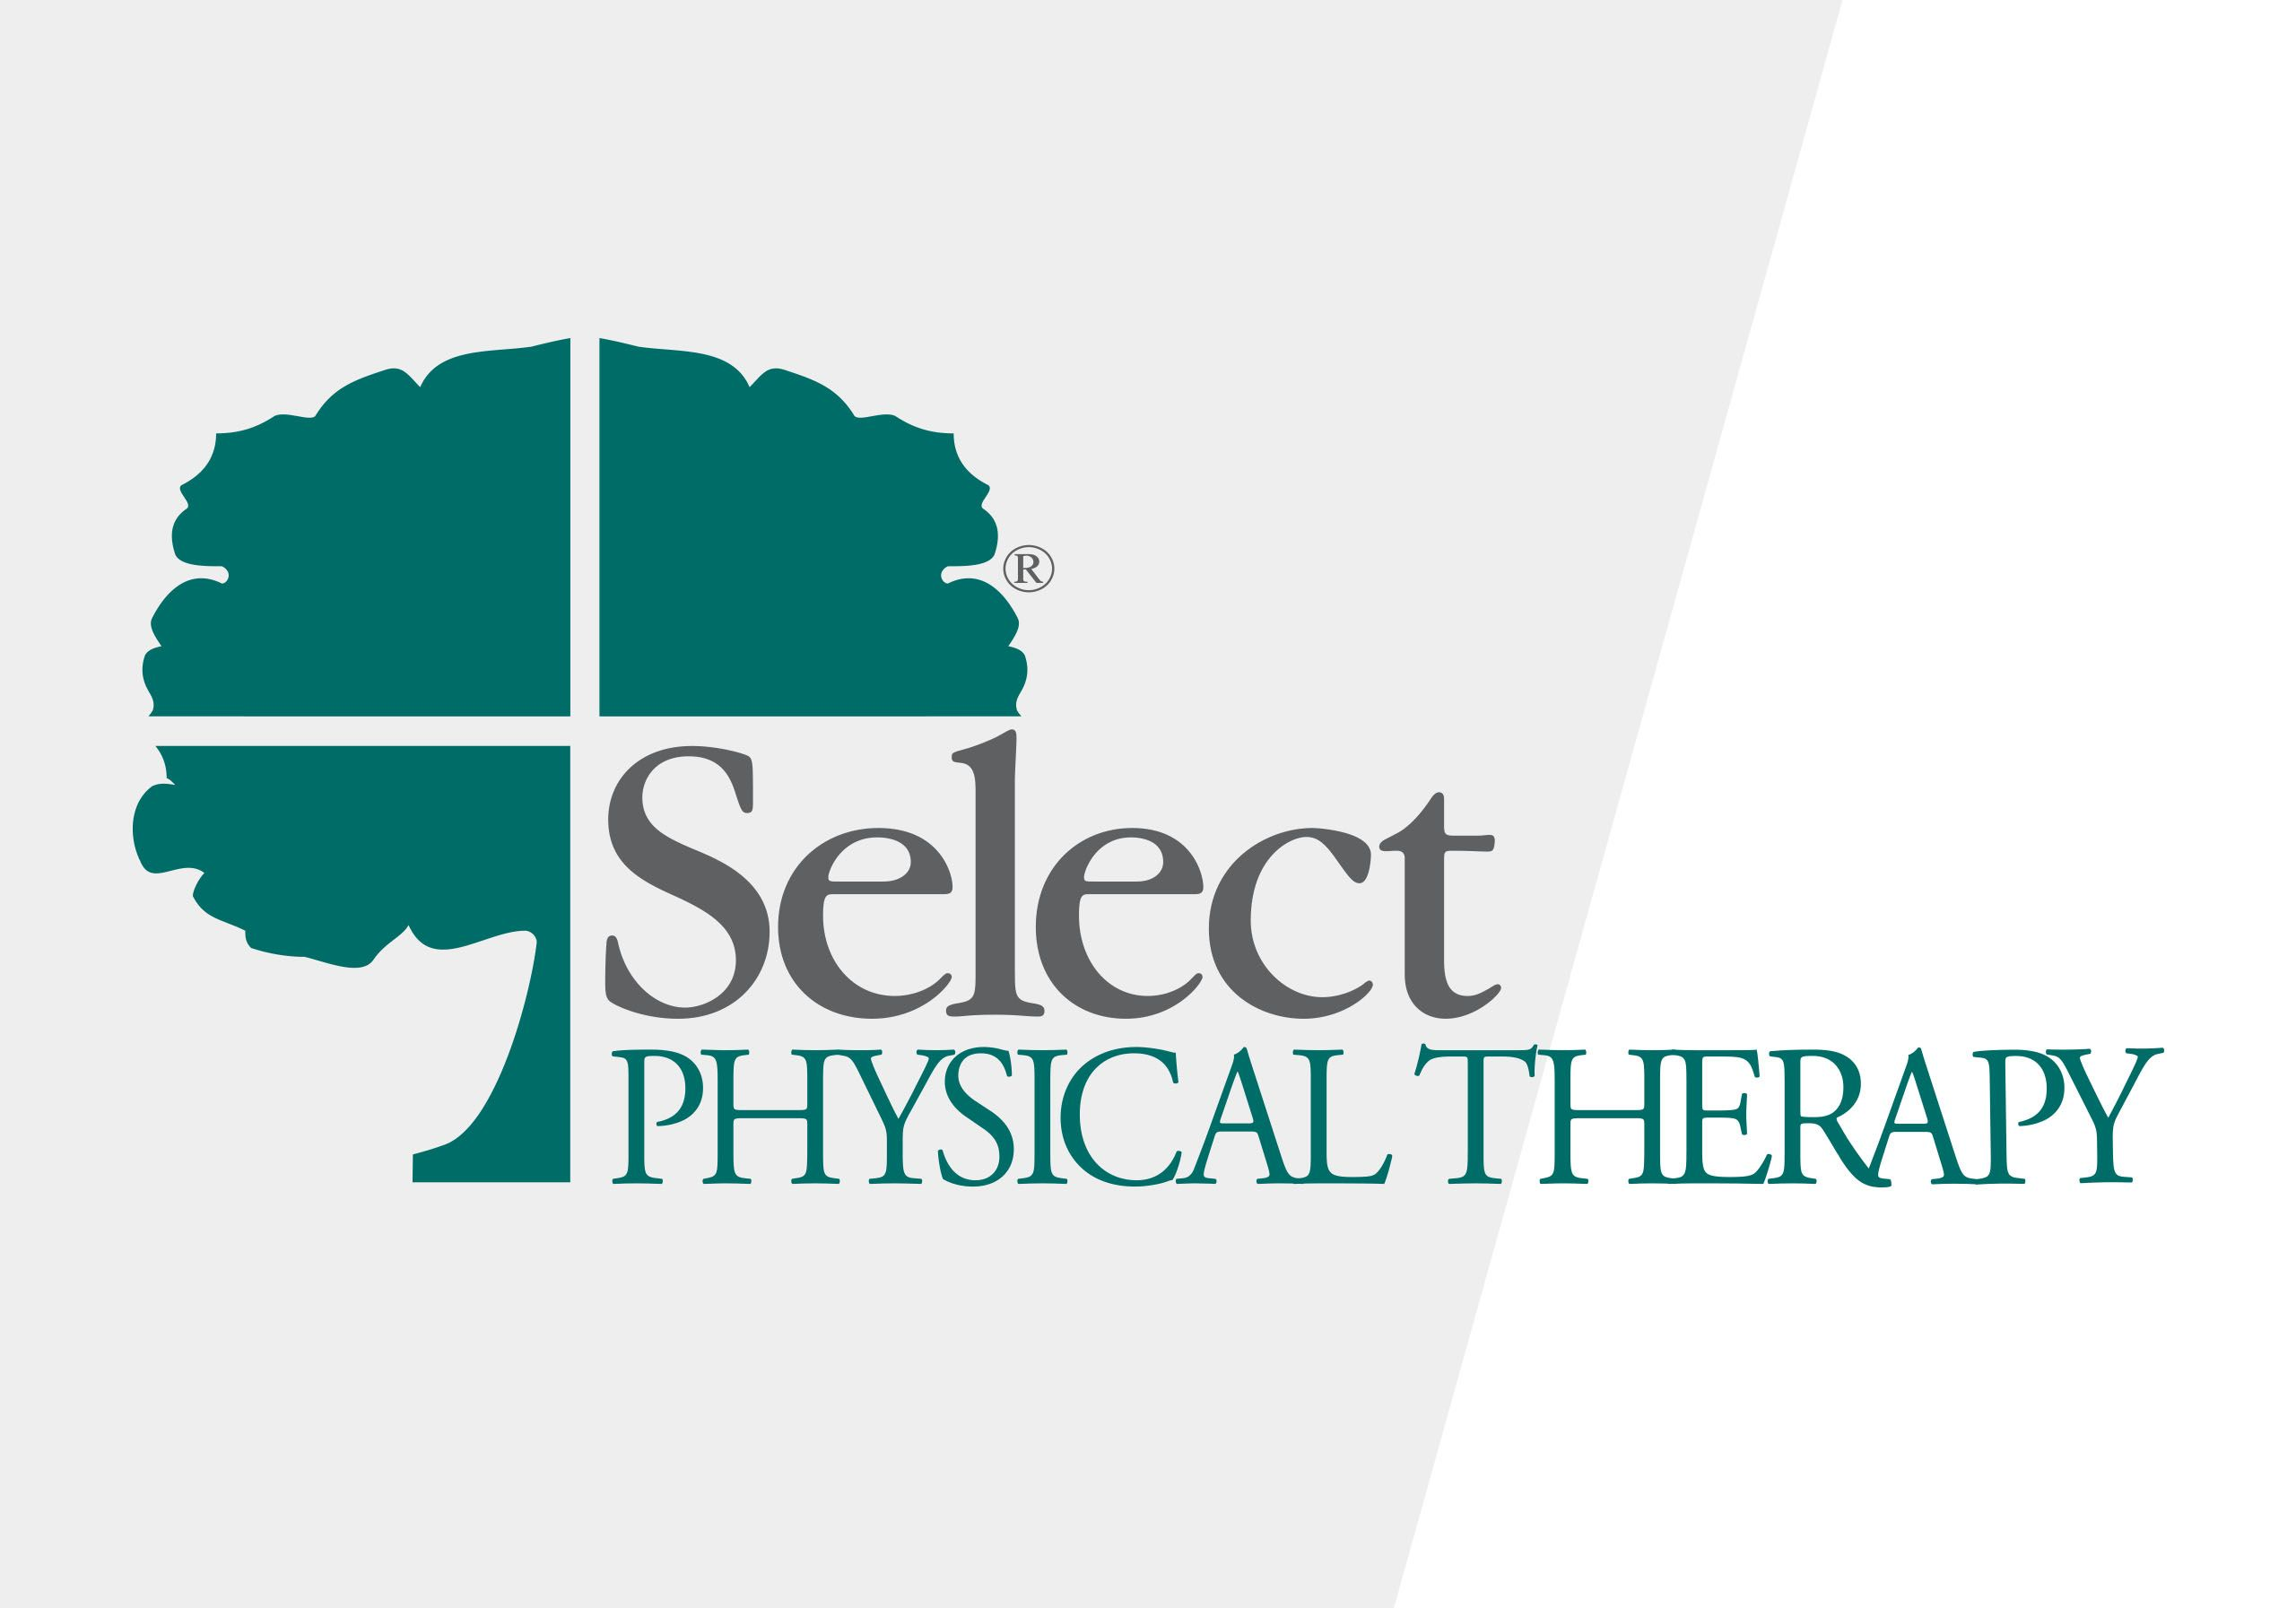 About Select Physical Therapy